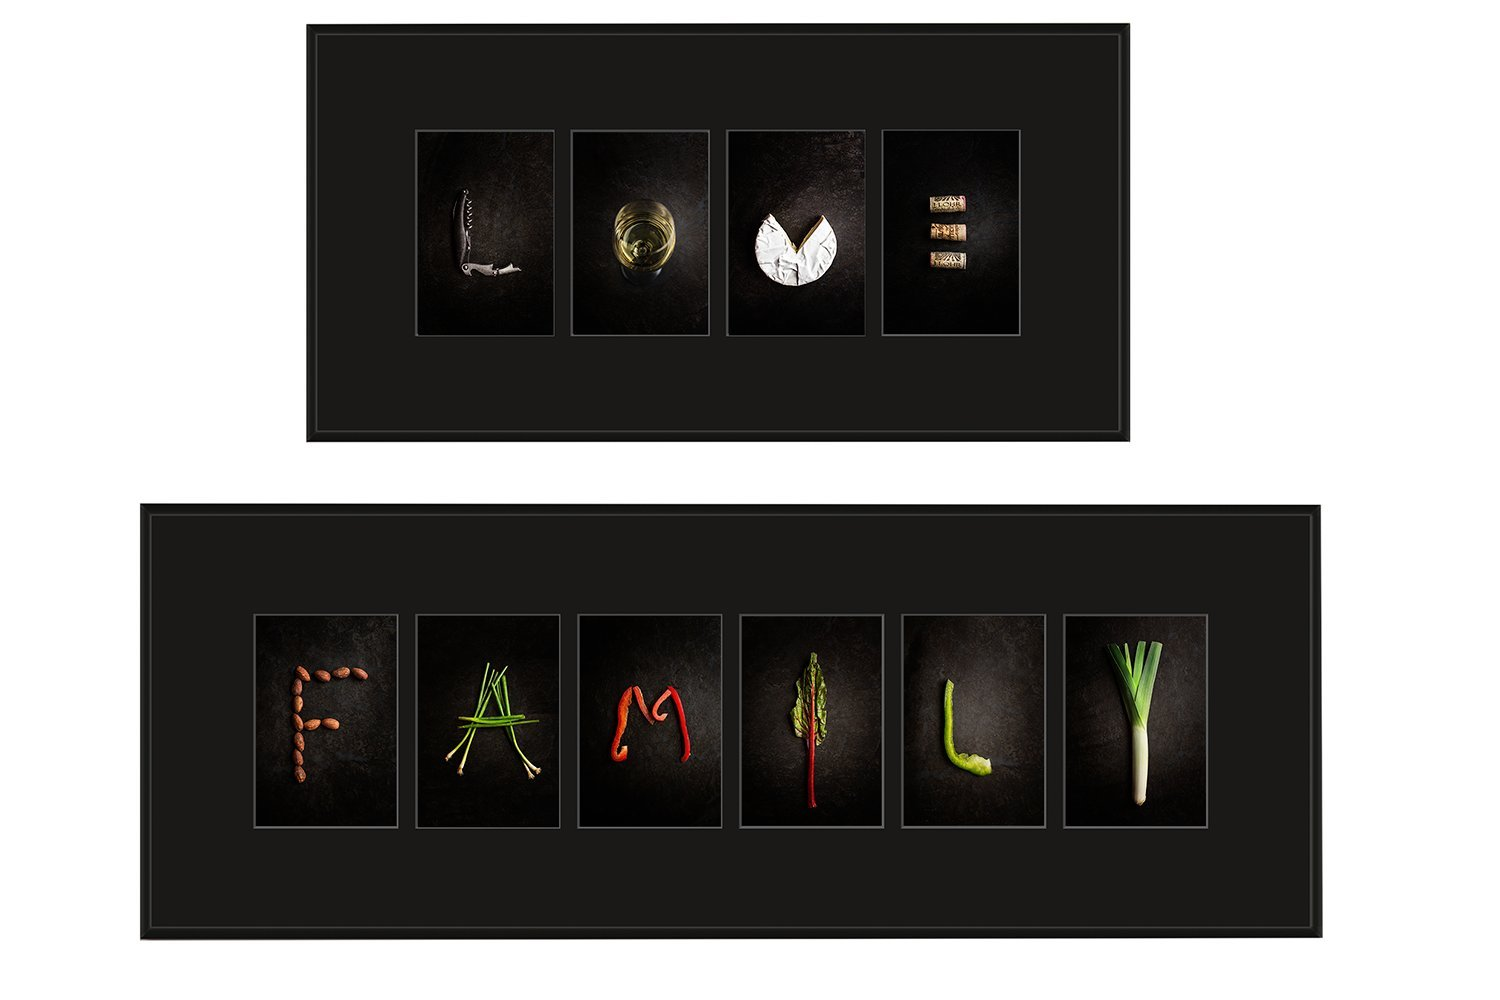 Alphabet Photography Duo 'LOVE' and 'FAMILY' Photography Art, Fine Art Food Photography Black Metal Frames, Black Matting. LOVE size 10x21 FAMILY size 10x29 Inspirational Home Decor